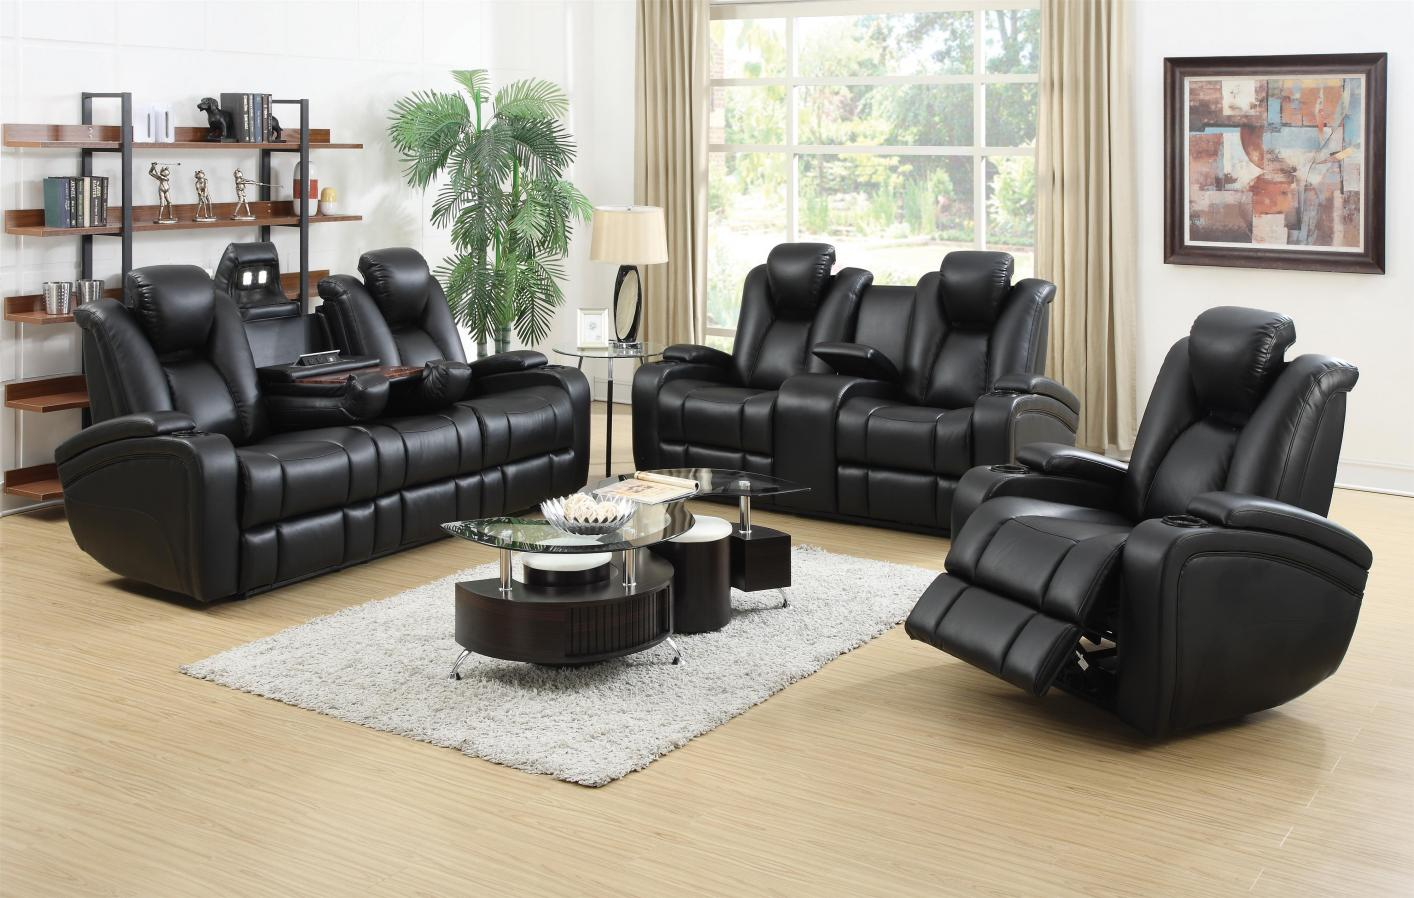 ... Loveseat Black Leather Loveseat & Black Leather Loveseat - Steal-A-Sofa Furniture Outlet Los Angeles CA islam-shia.org